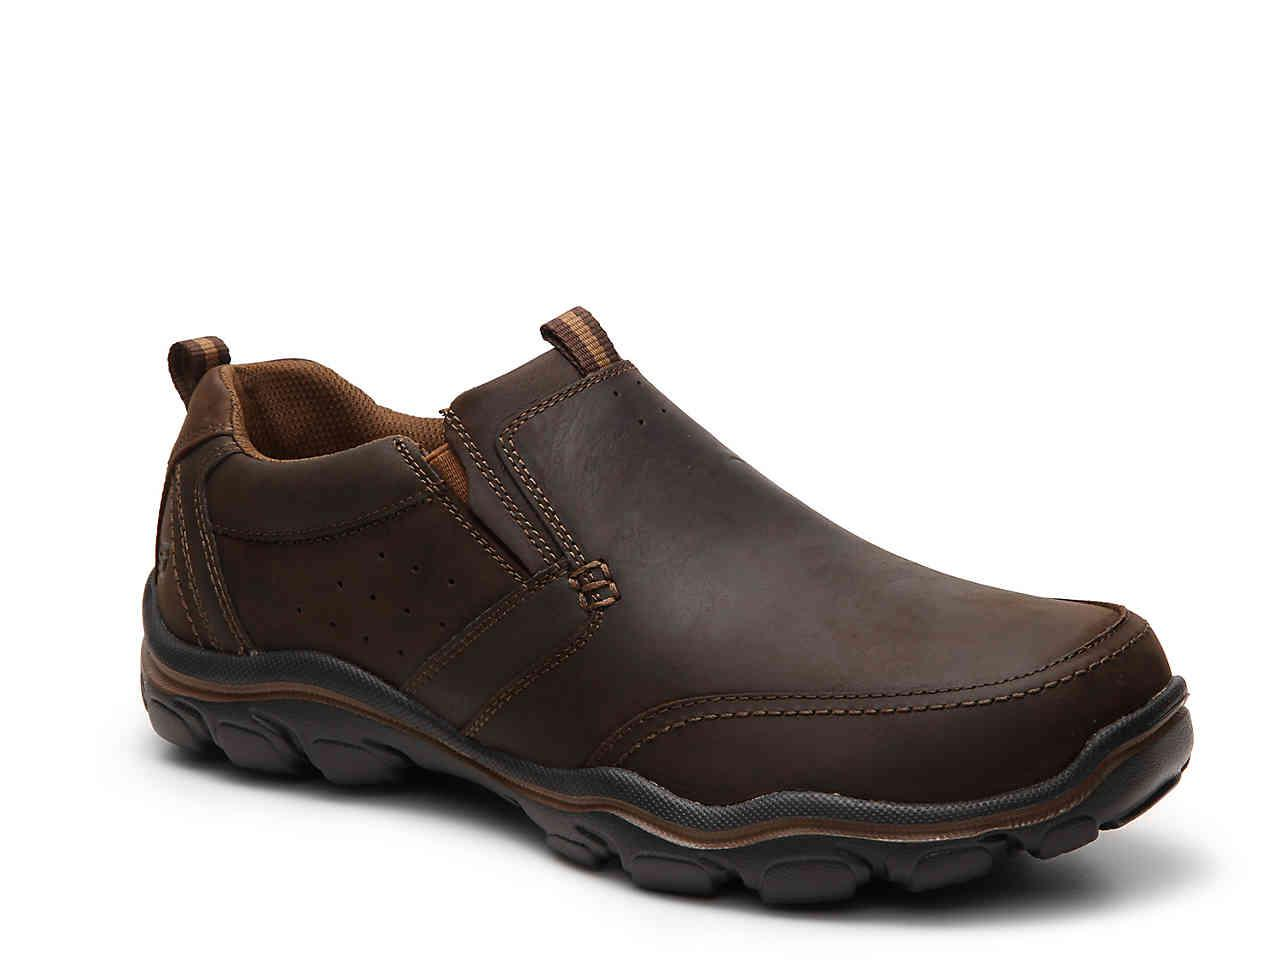 514e8a22be0 Lyst - Skechers Relaxed Fit Devent Slip-on in Brown for Men